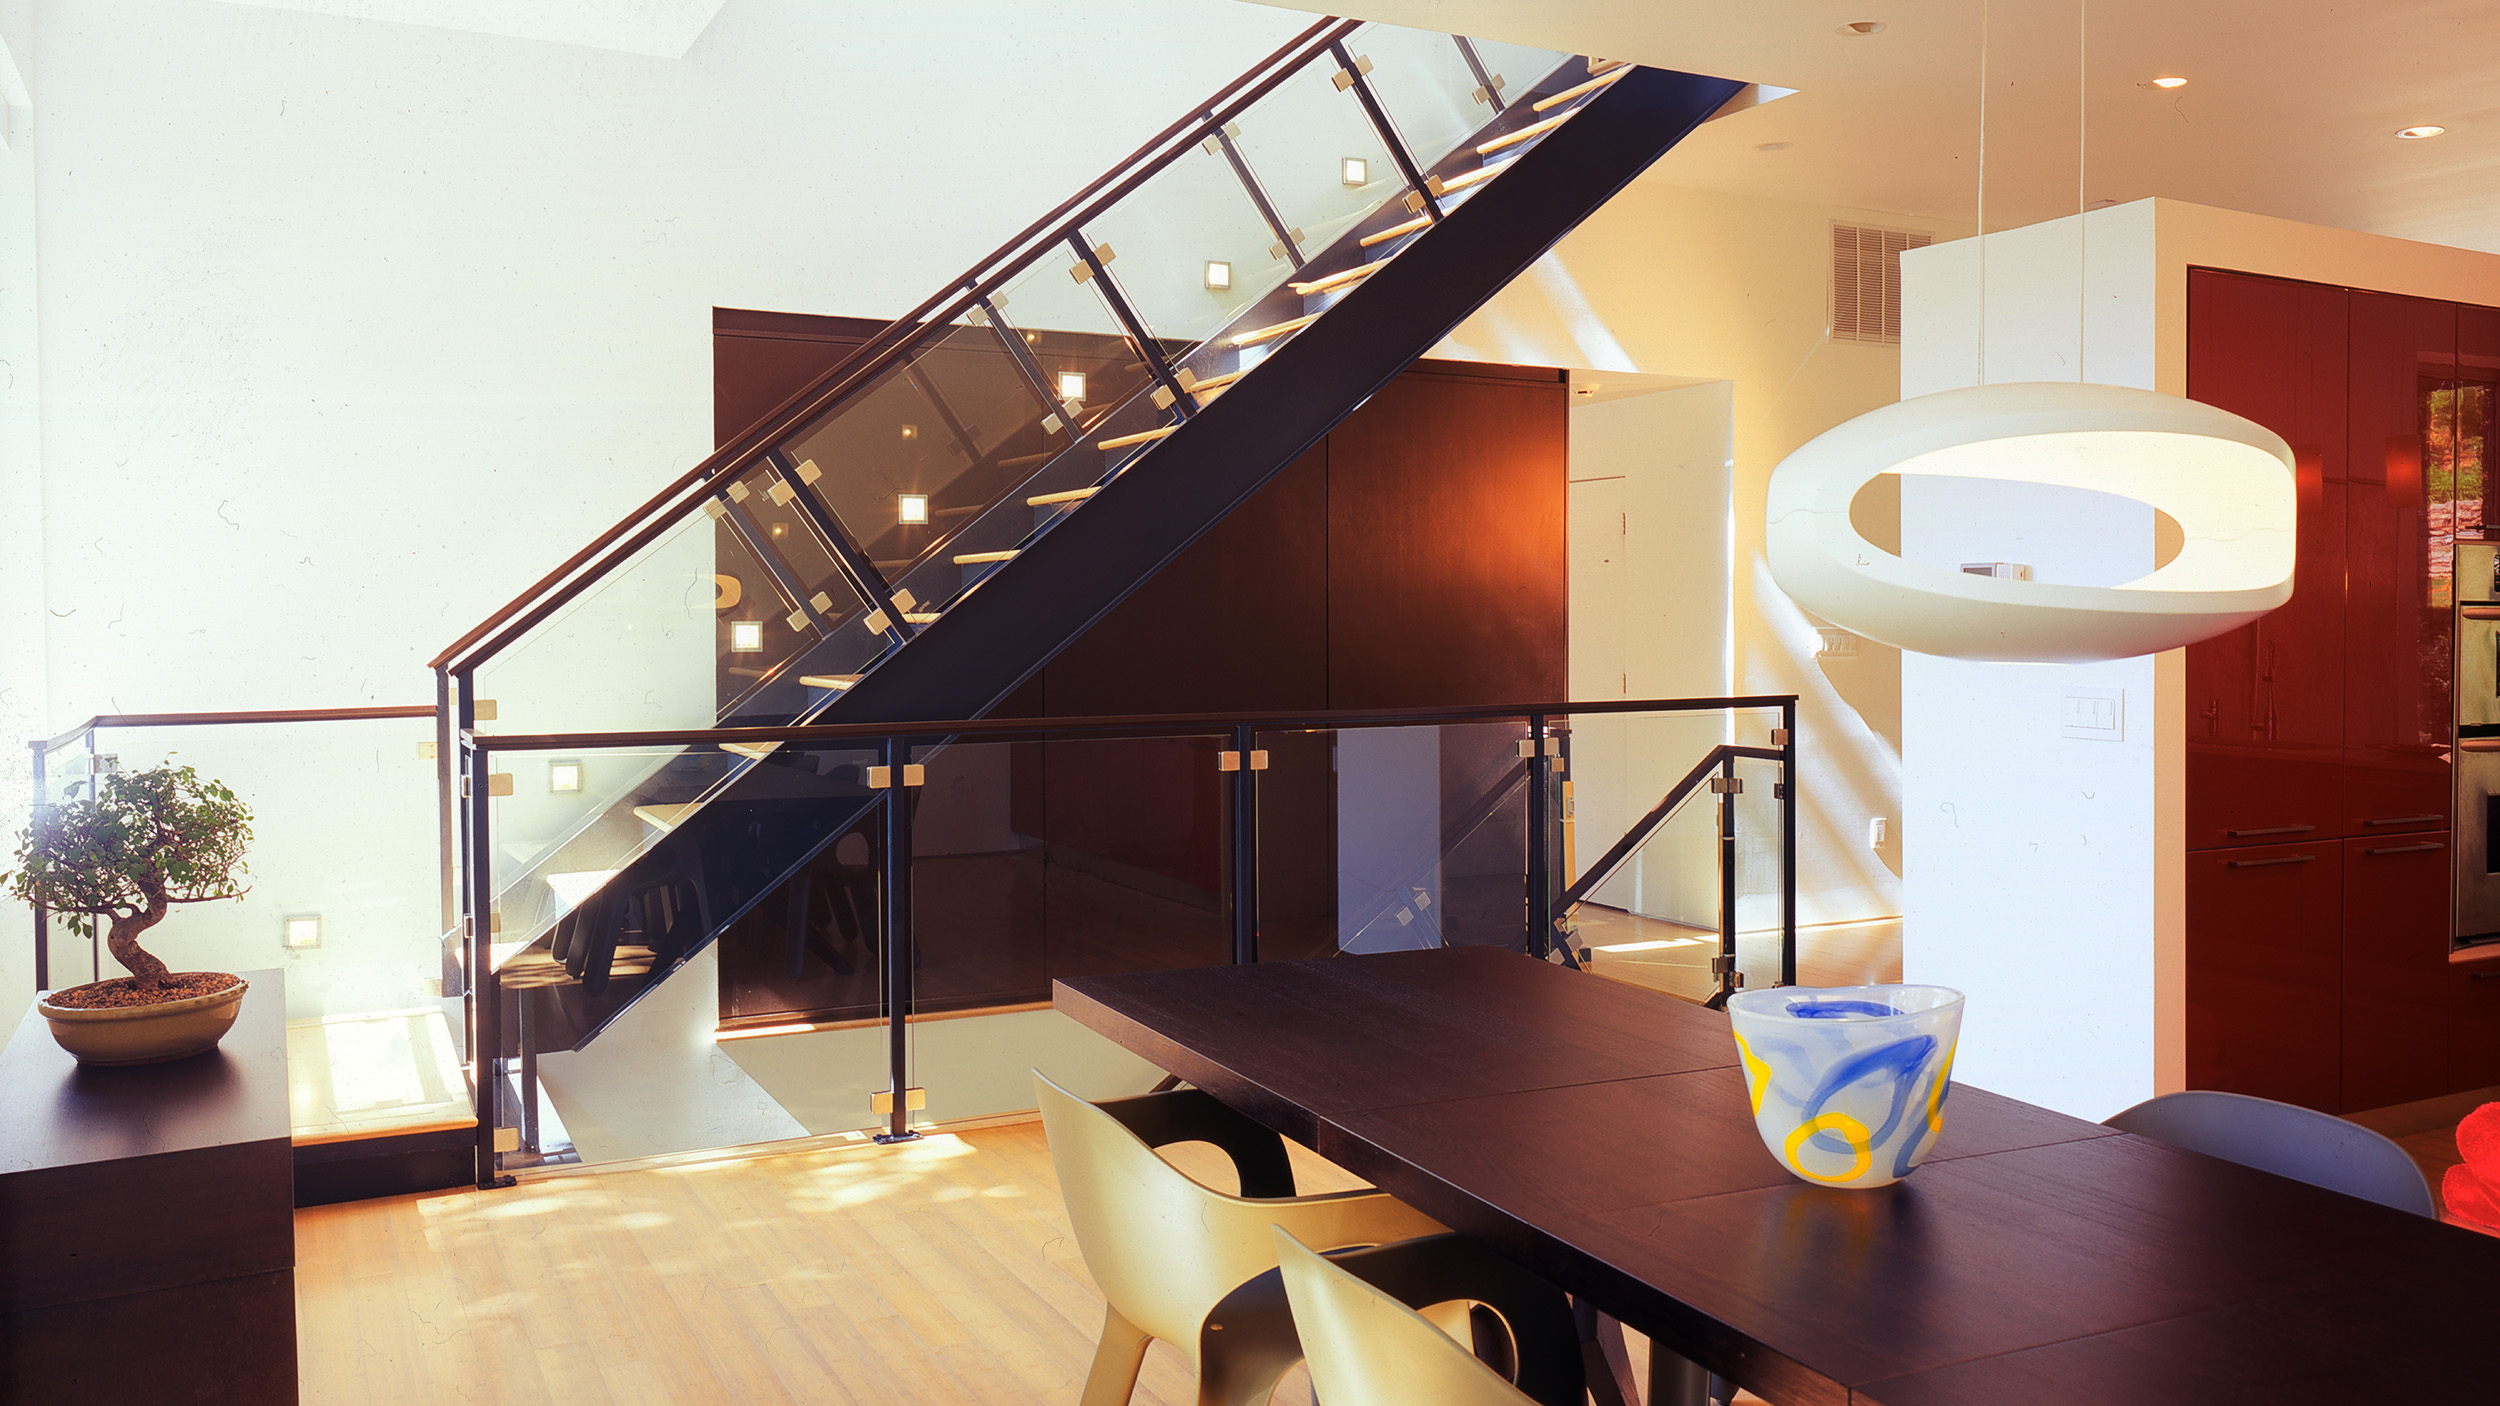 6w stair and dining room.jpg